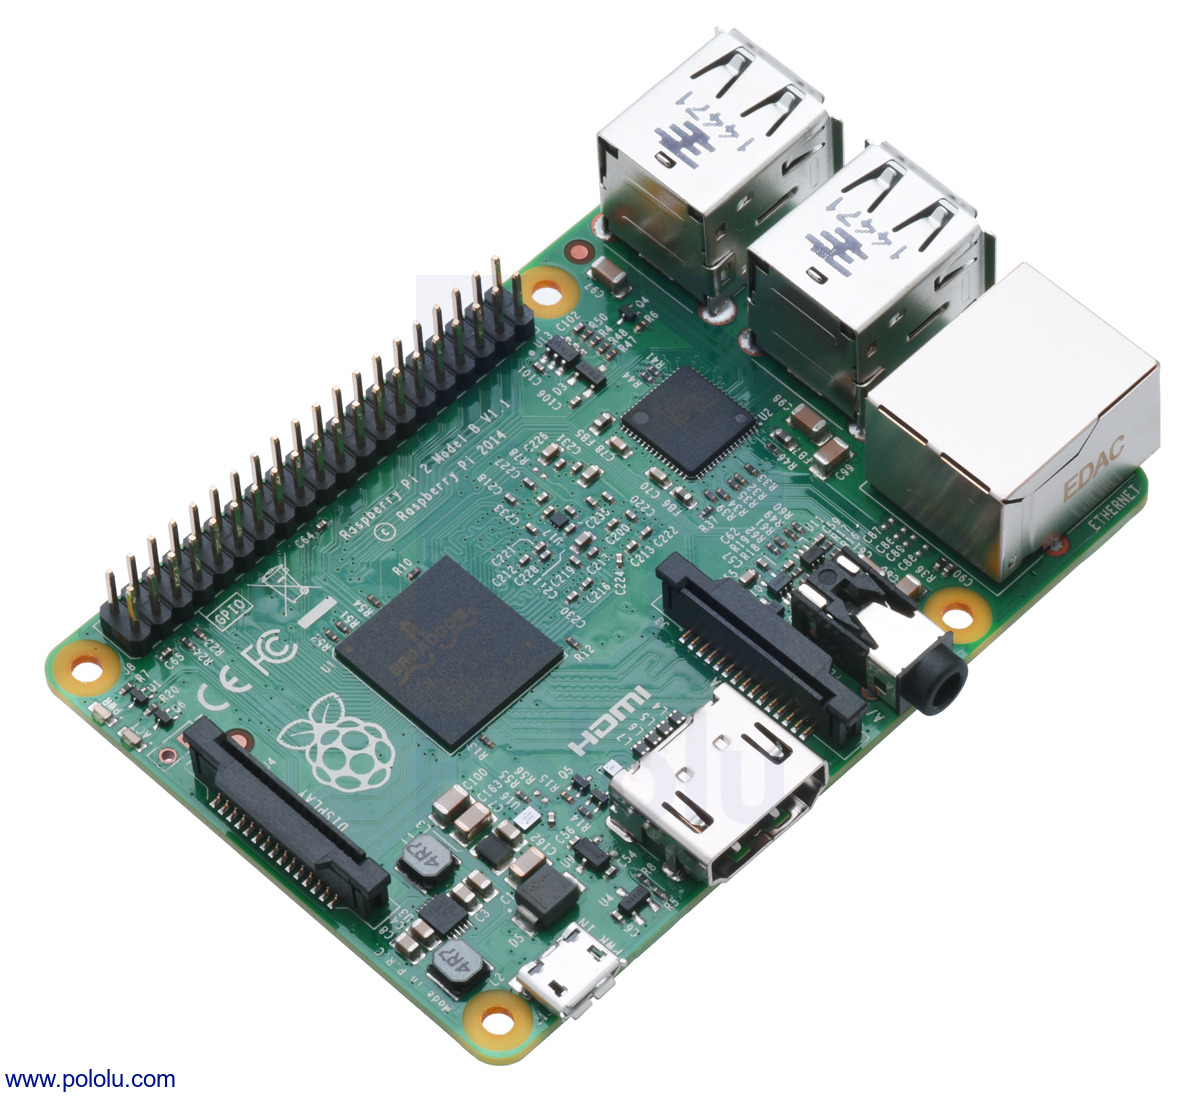 Pololu Raspberry Pi 2 Model B Block Diagram